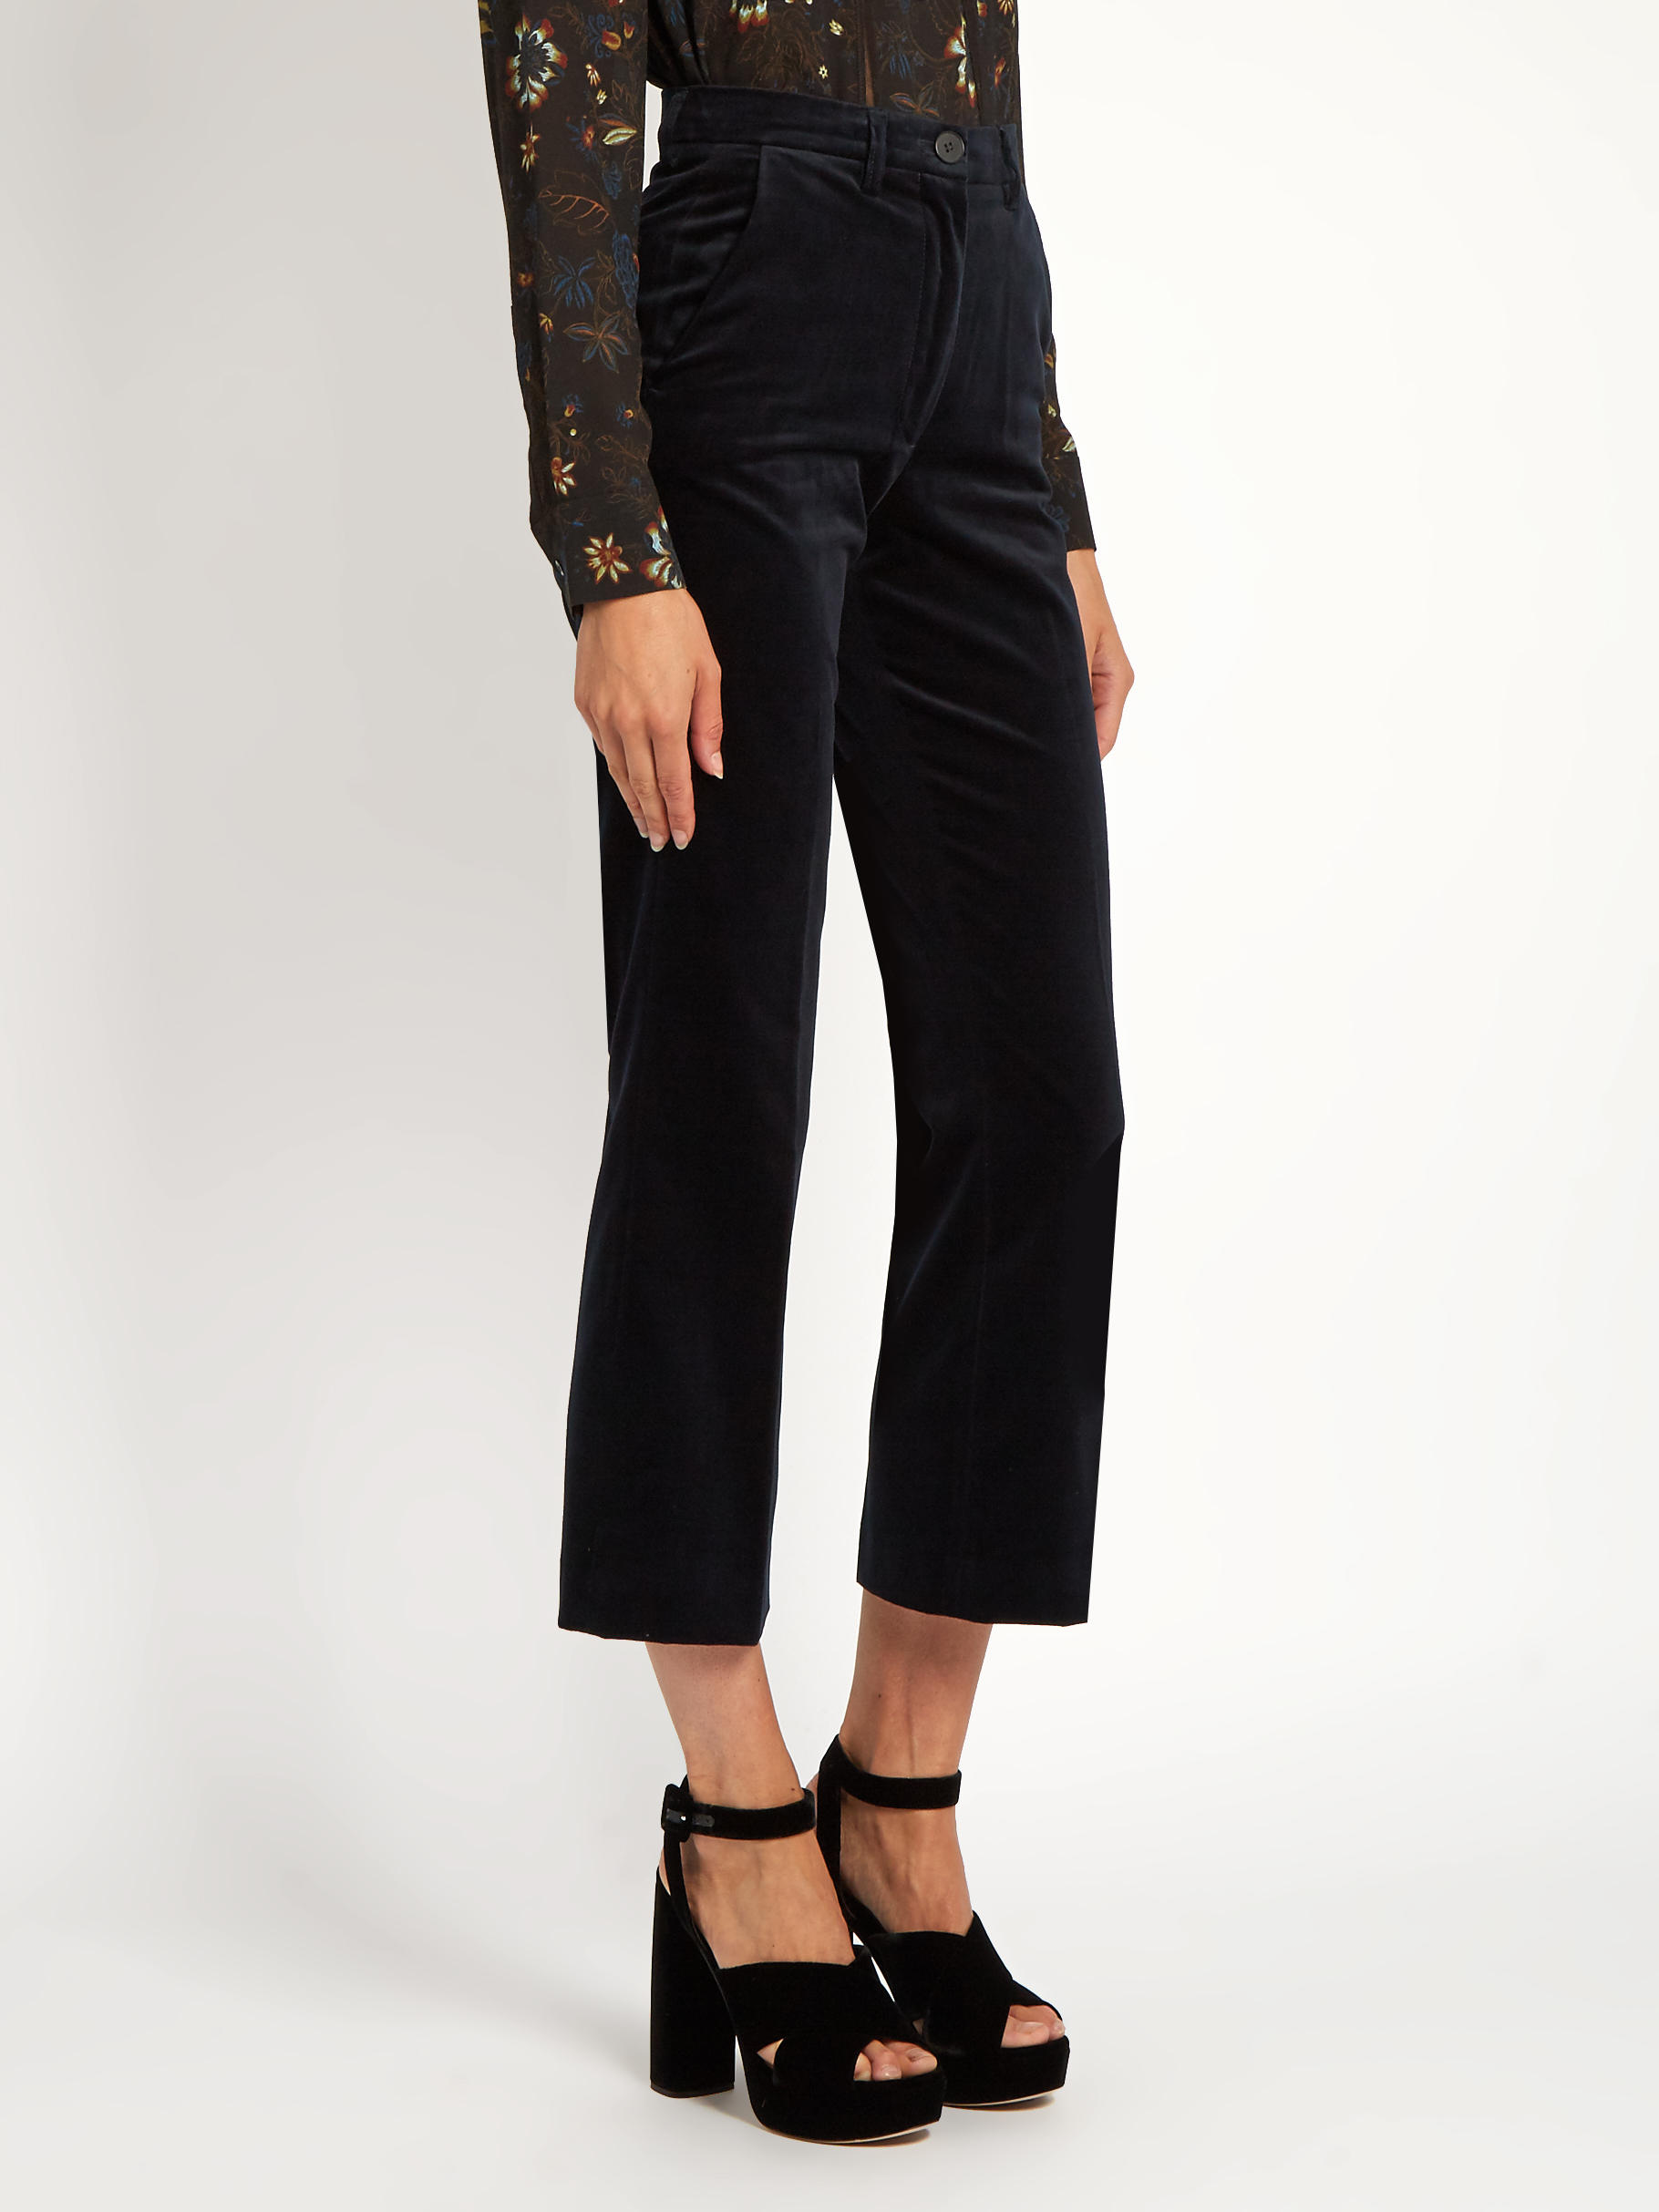 M.I.H Jeans   Coler High Rise Cropped Velvet Flared Trousers , £147 (used to be £245) -  My other favourite jeans brand although these are not technically jeans, I know. But anyway, MIH Jeans have the greatest cuts and the most comfortable jeans (along with JBrand) and velvet, cropped and flared is just so perfect.